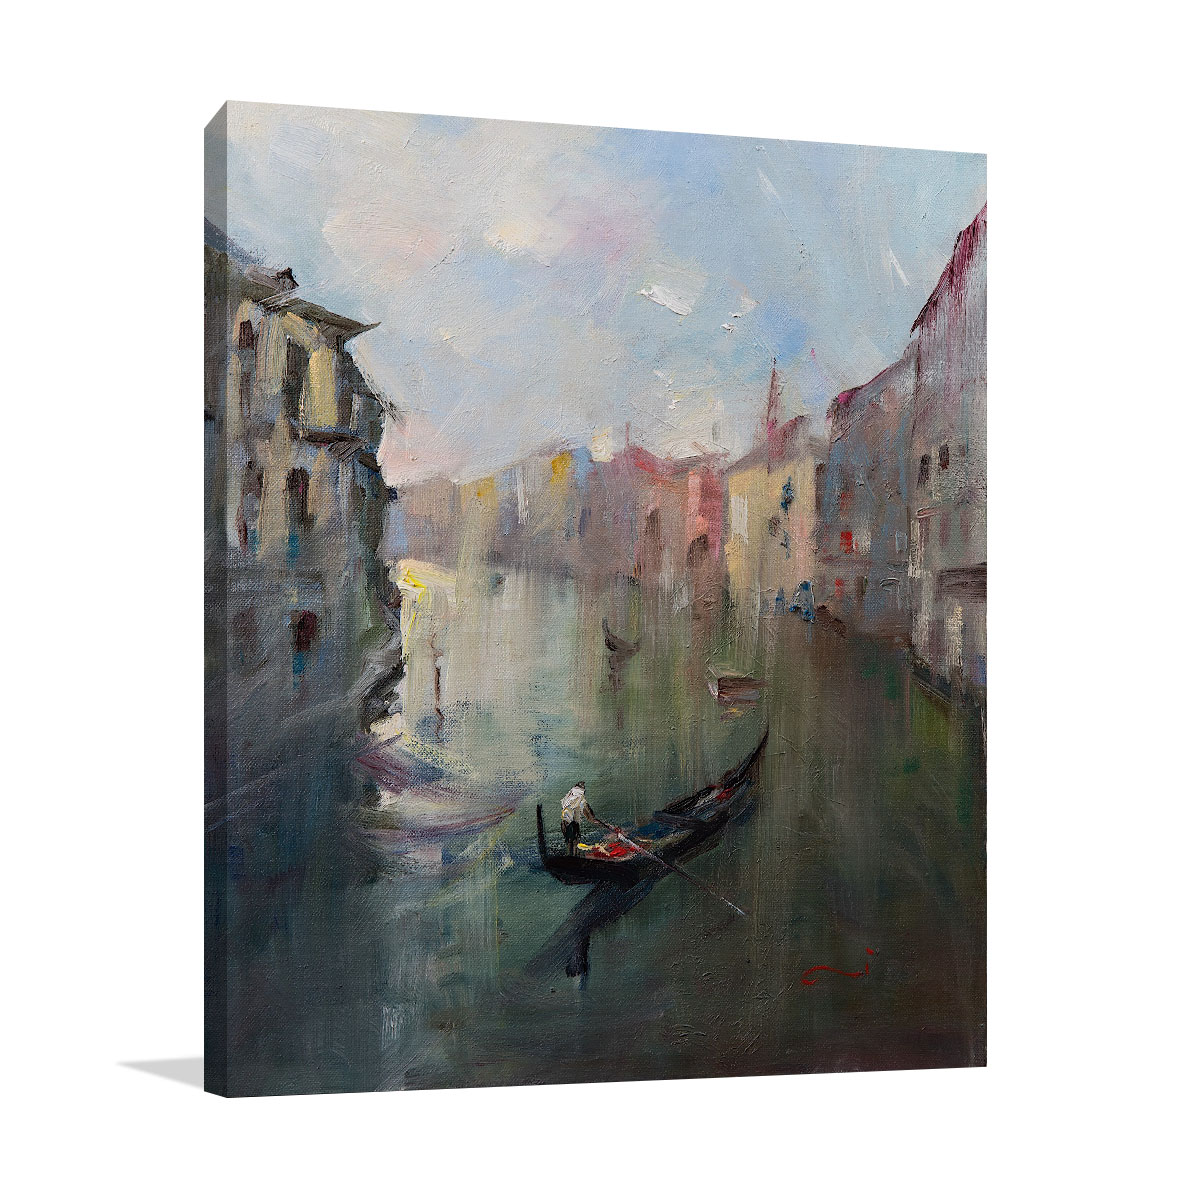 Li Zhou | Venice Canal Paintings | Wall Art Prints | Australia